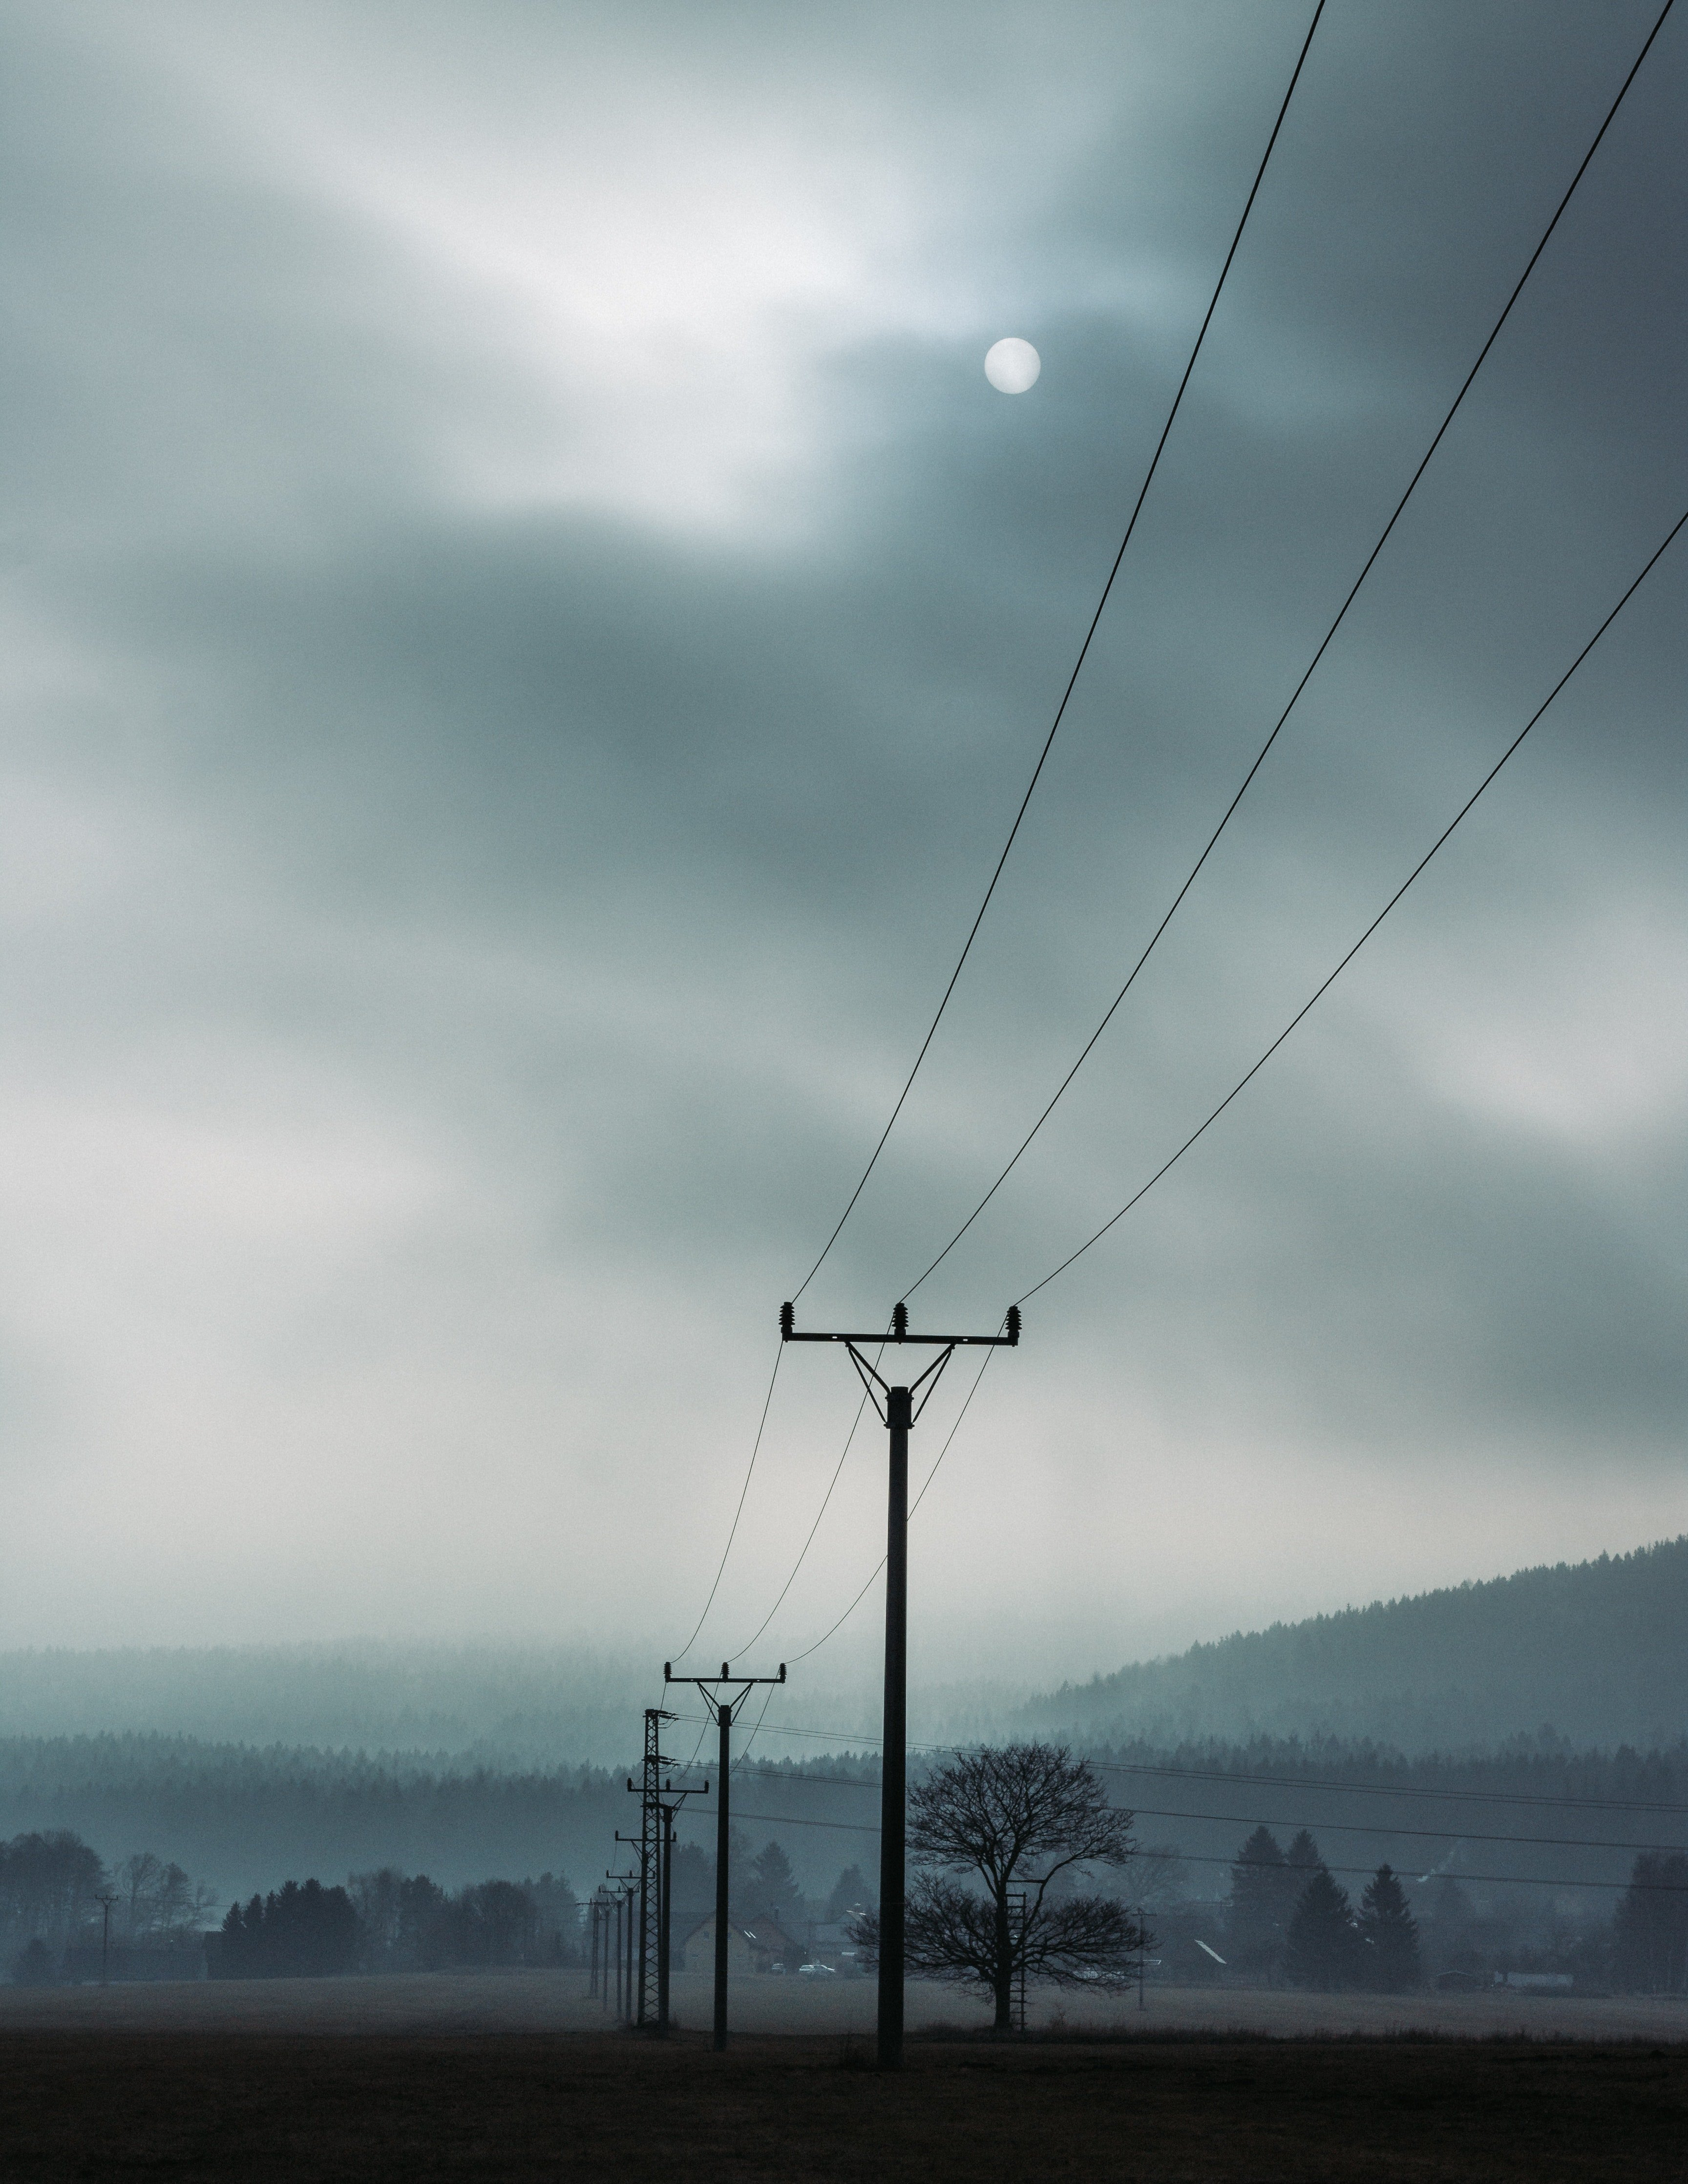 Landscape picture of electric posts on a cloudy day. | Source: Pexels.